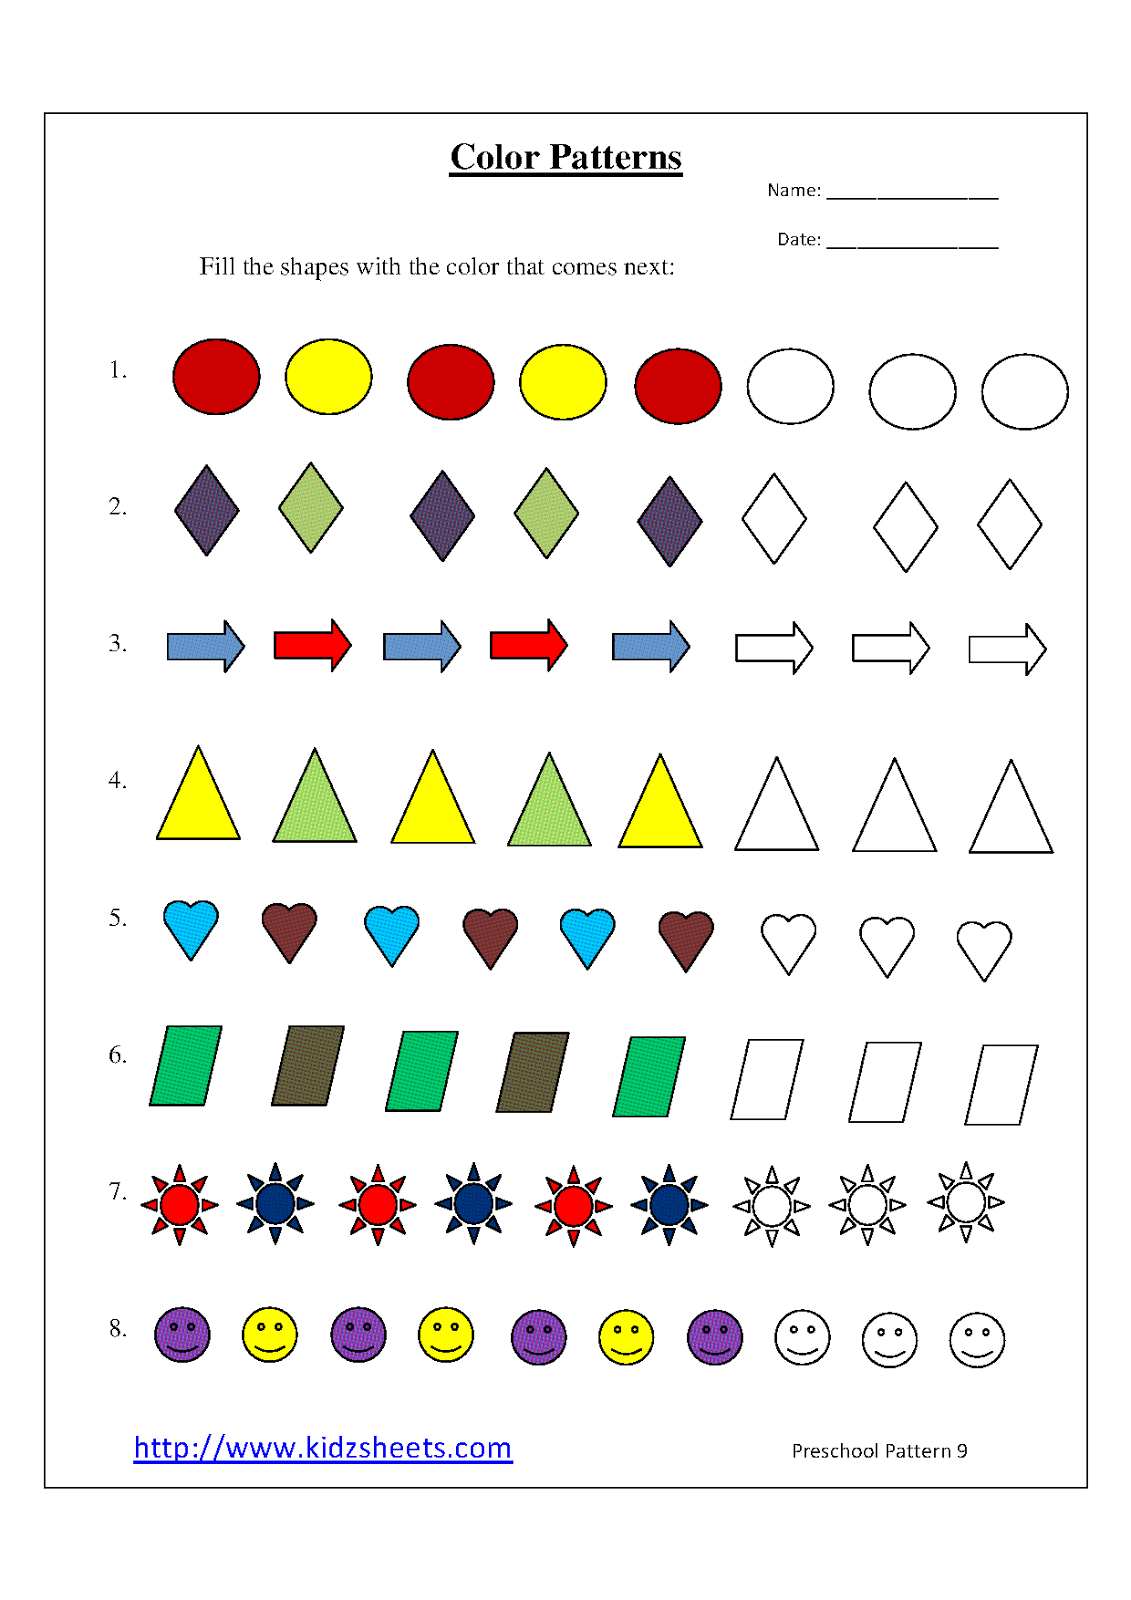 Kidz Worksheets Preschool Color Patterns Worksheet9 – Pattern for Kindergarten Worksheets